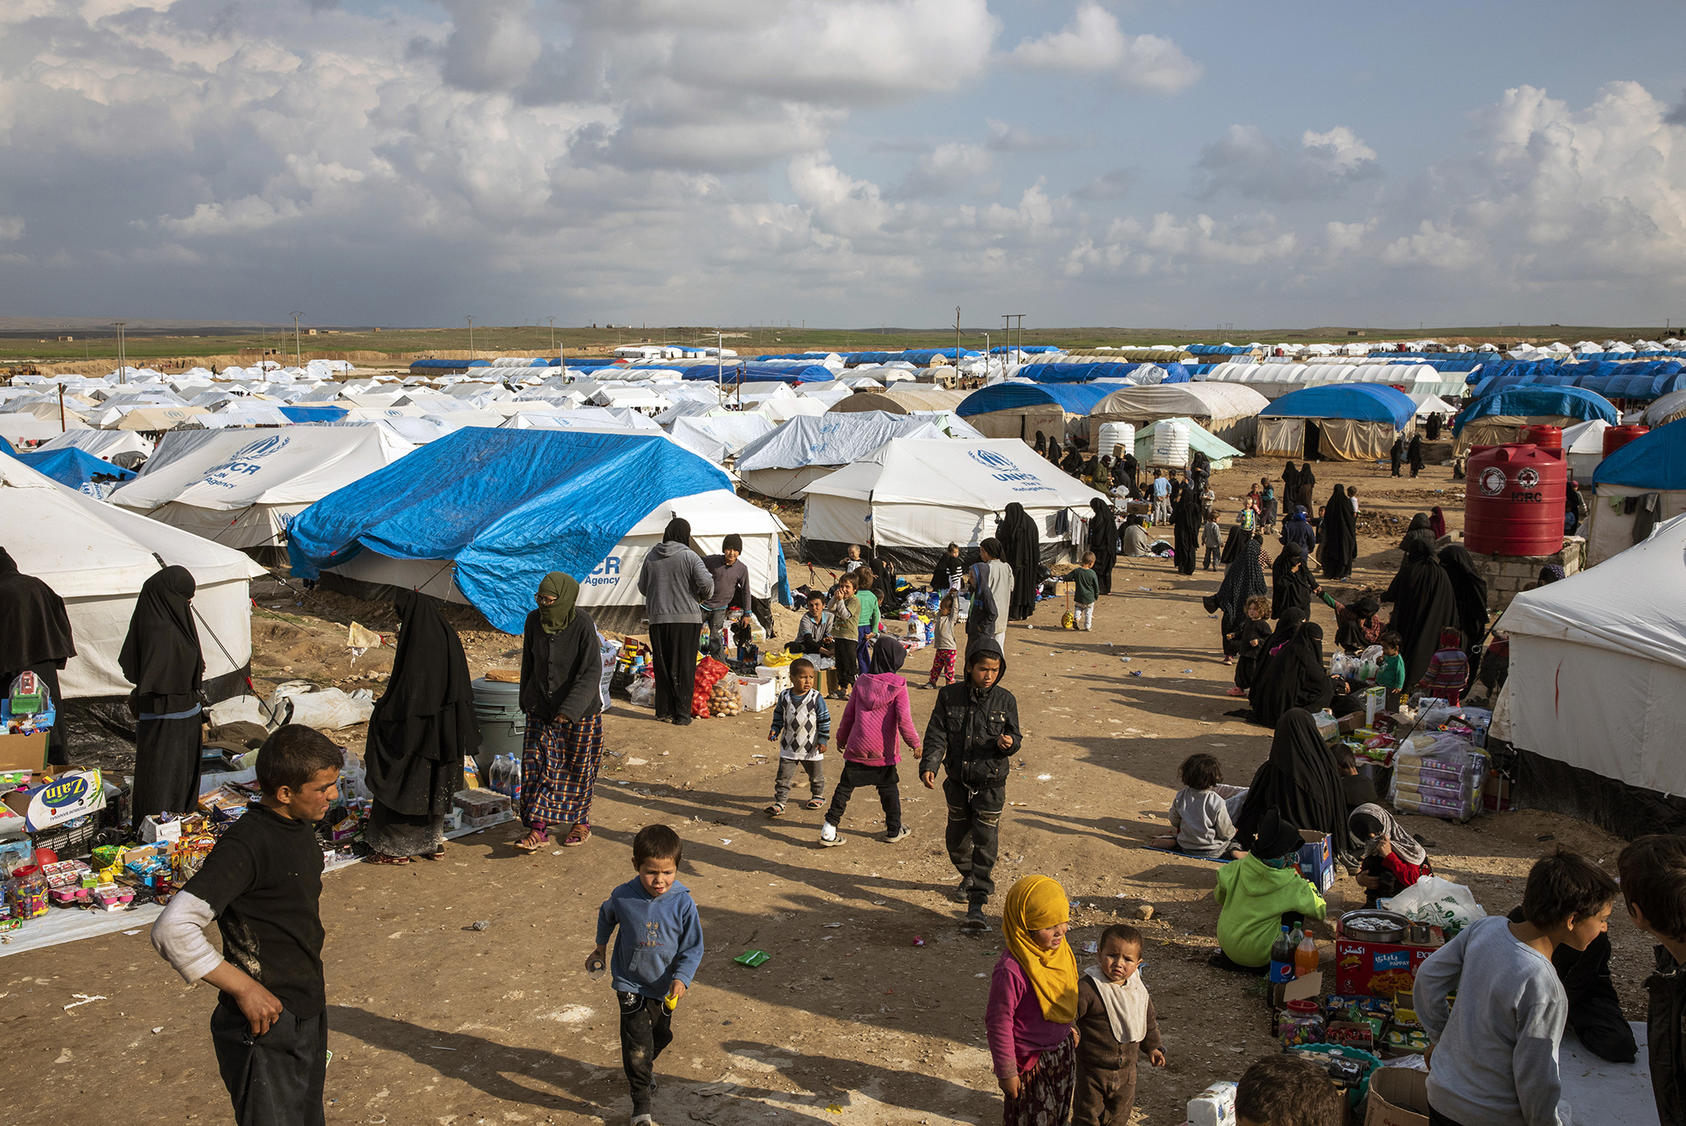 Syria's Al Hol camp holds thousands of people who lived under ISIS' rule. Many, including children and people lured or coerced into ISIS' orbit, are trying to return to homelands abroad. (Ivor Pickett/The New York Times)